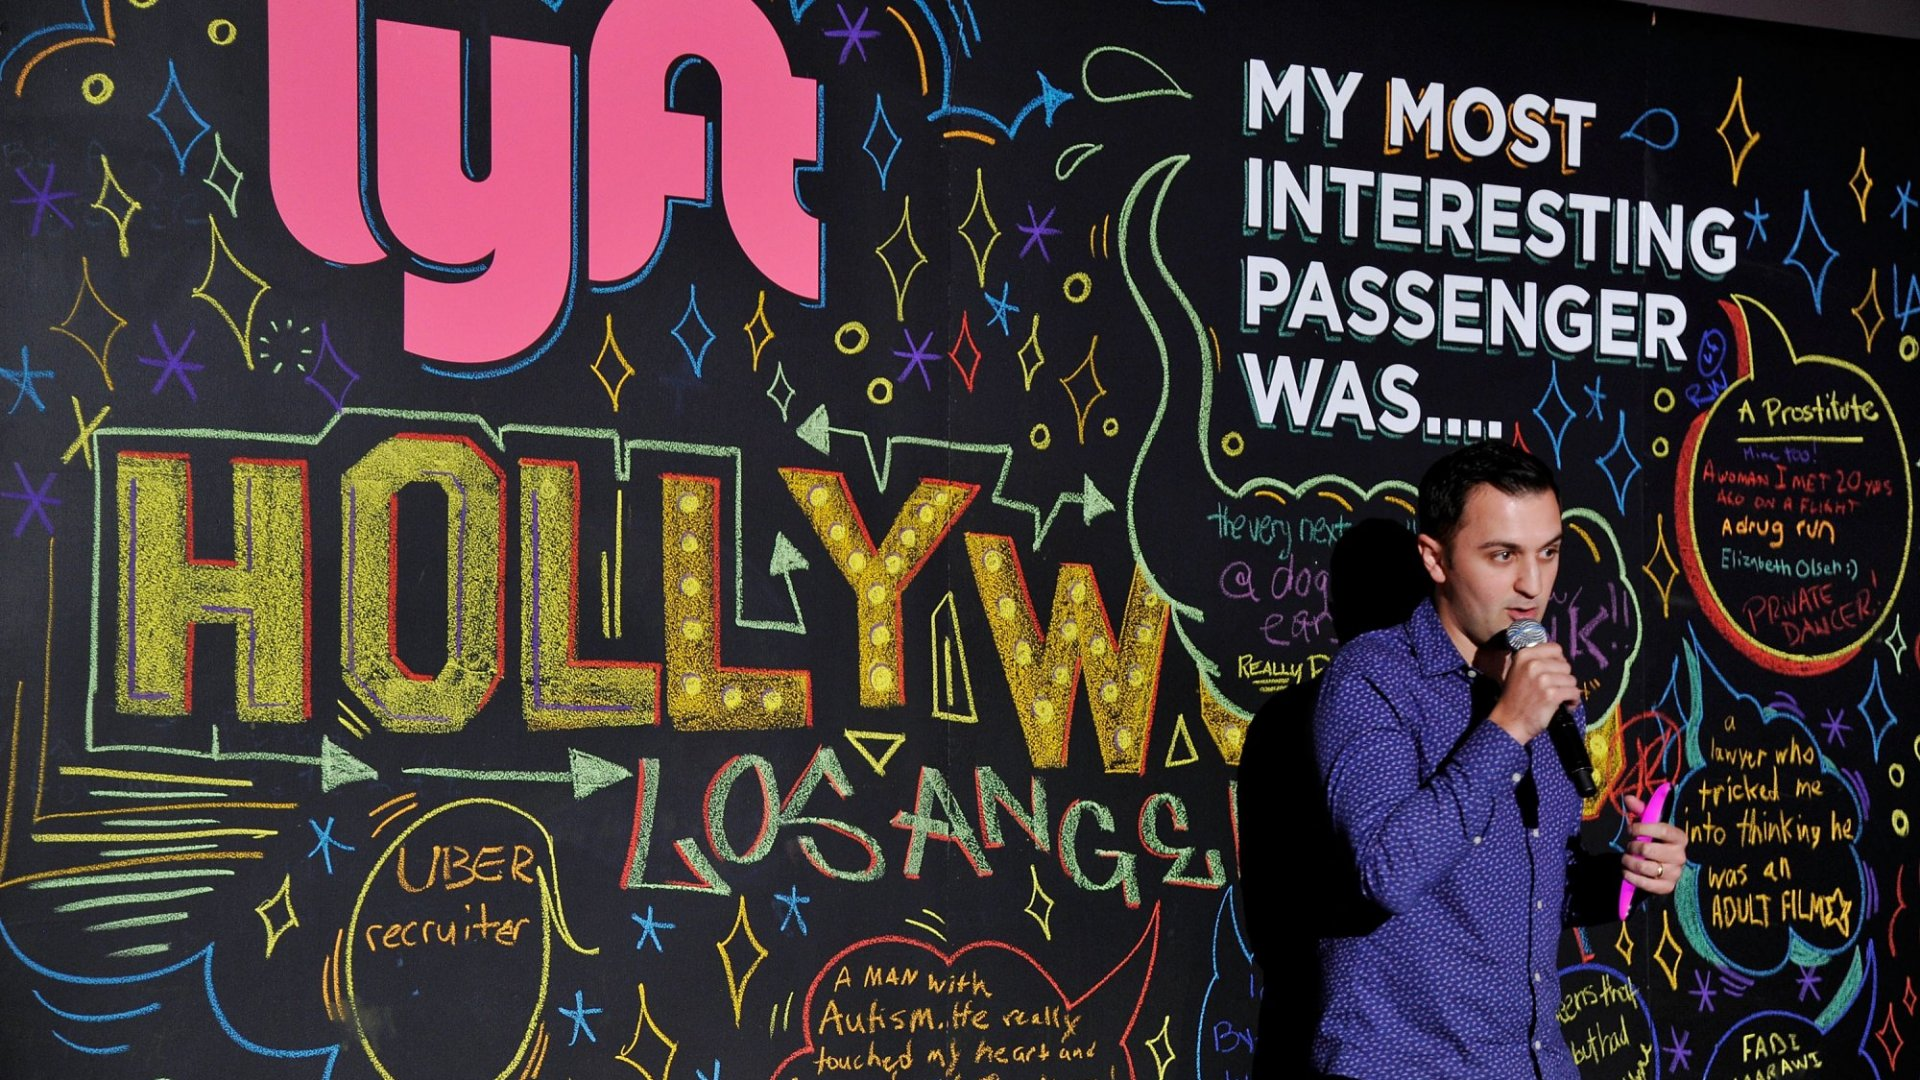 15 Surprising Facts About $5.5 Billion Rideshare Giant Lyft